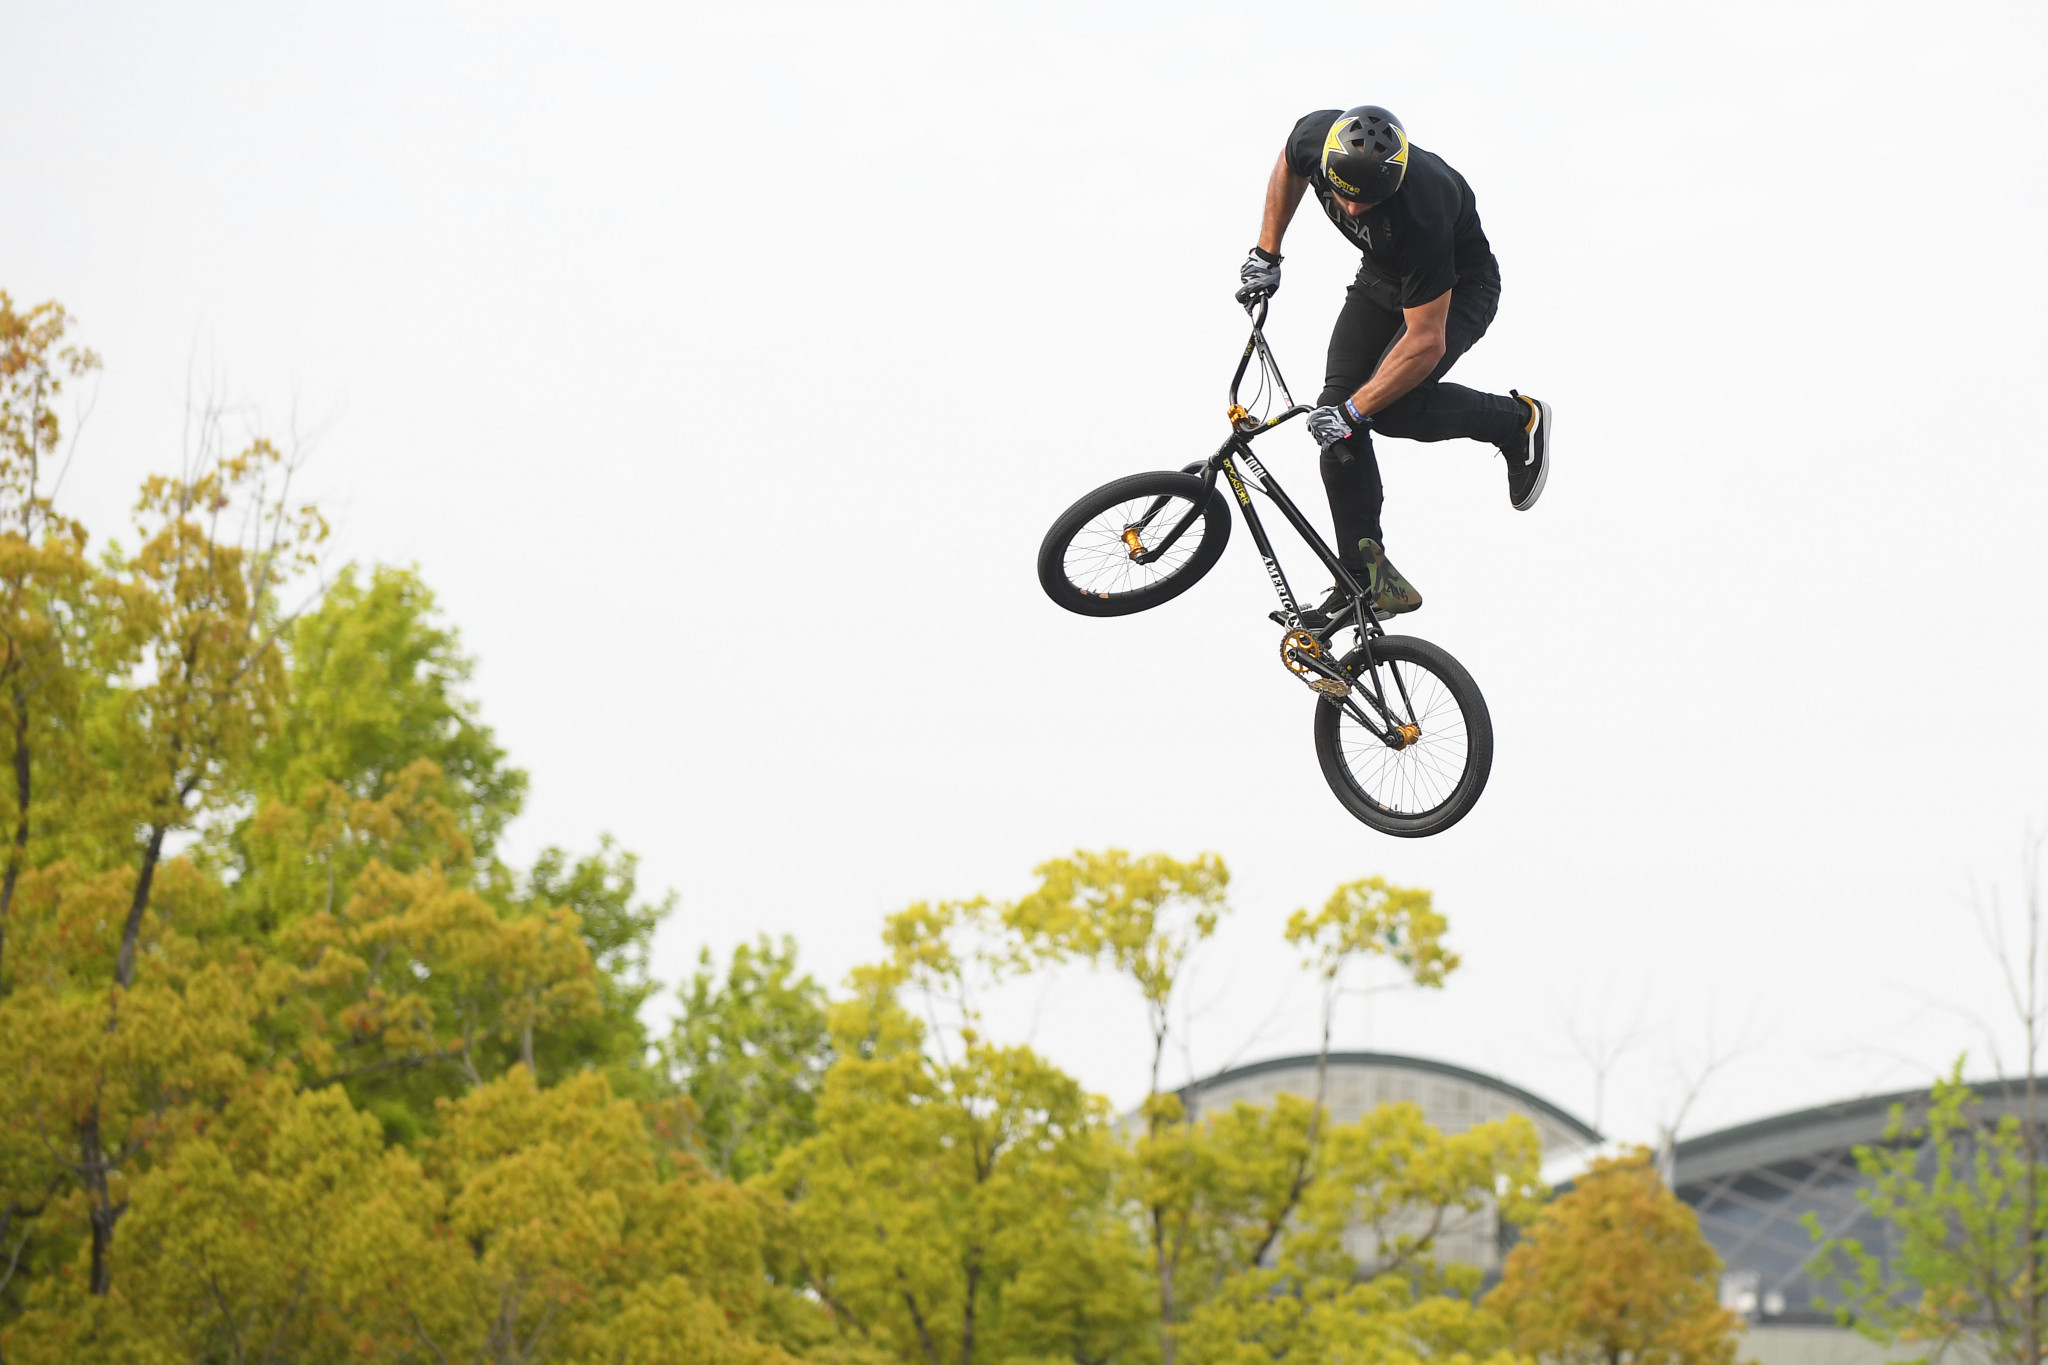 Bruce impresses in BMX Freestyle Park qualifying at FISE World Series